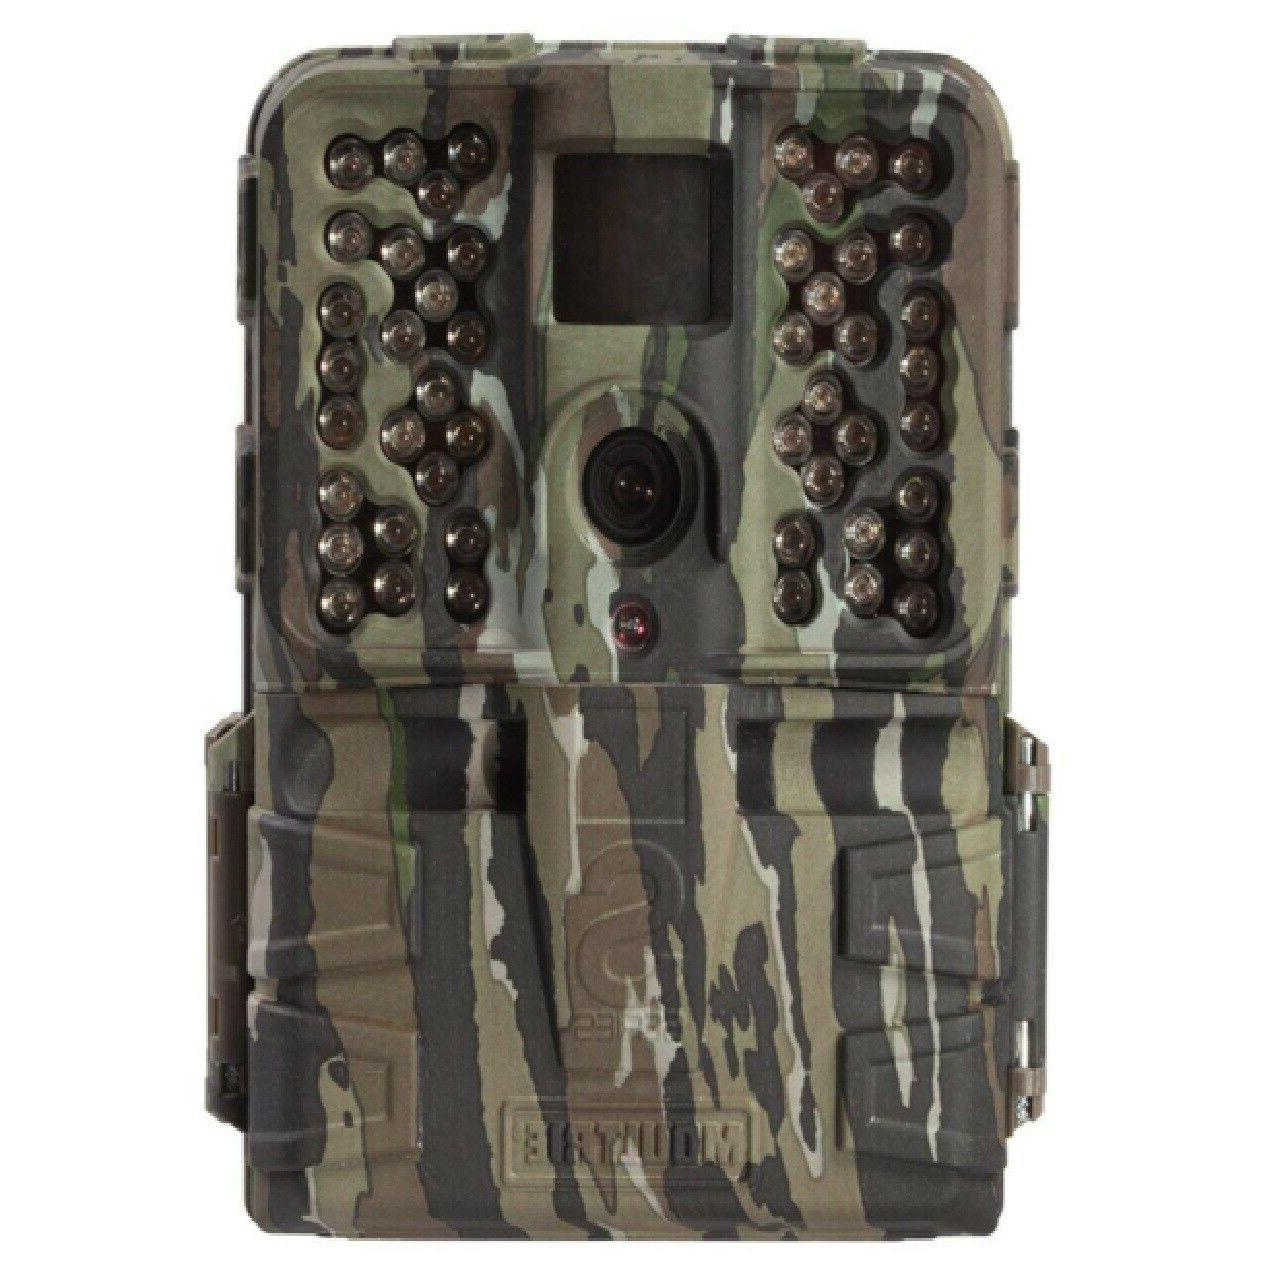 Moultrie MCG-13183 20MP Infrared Game Trail Camera S-50i